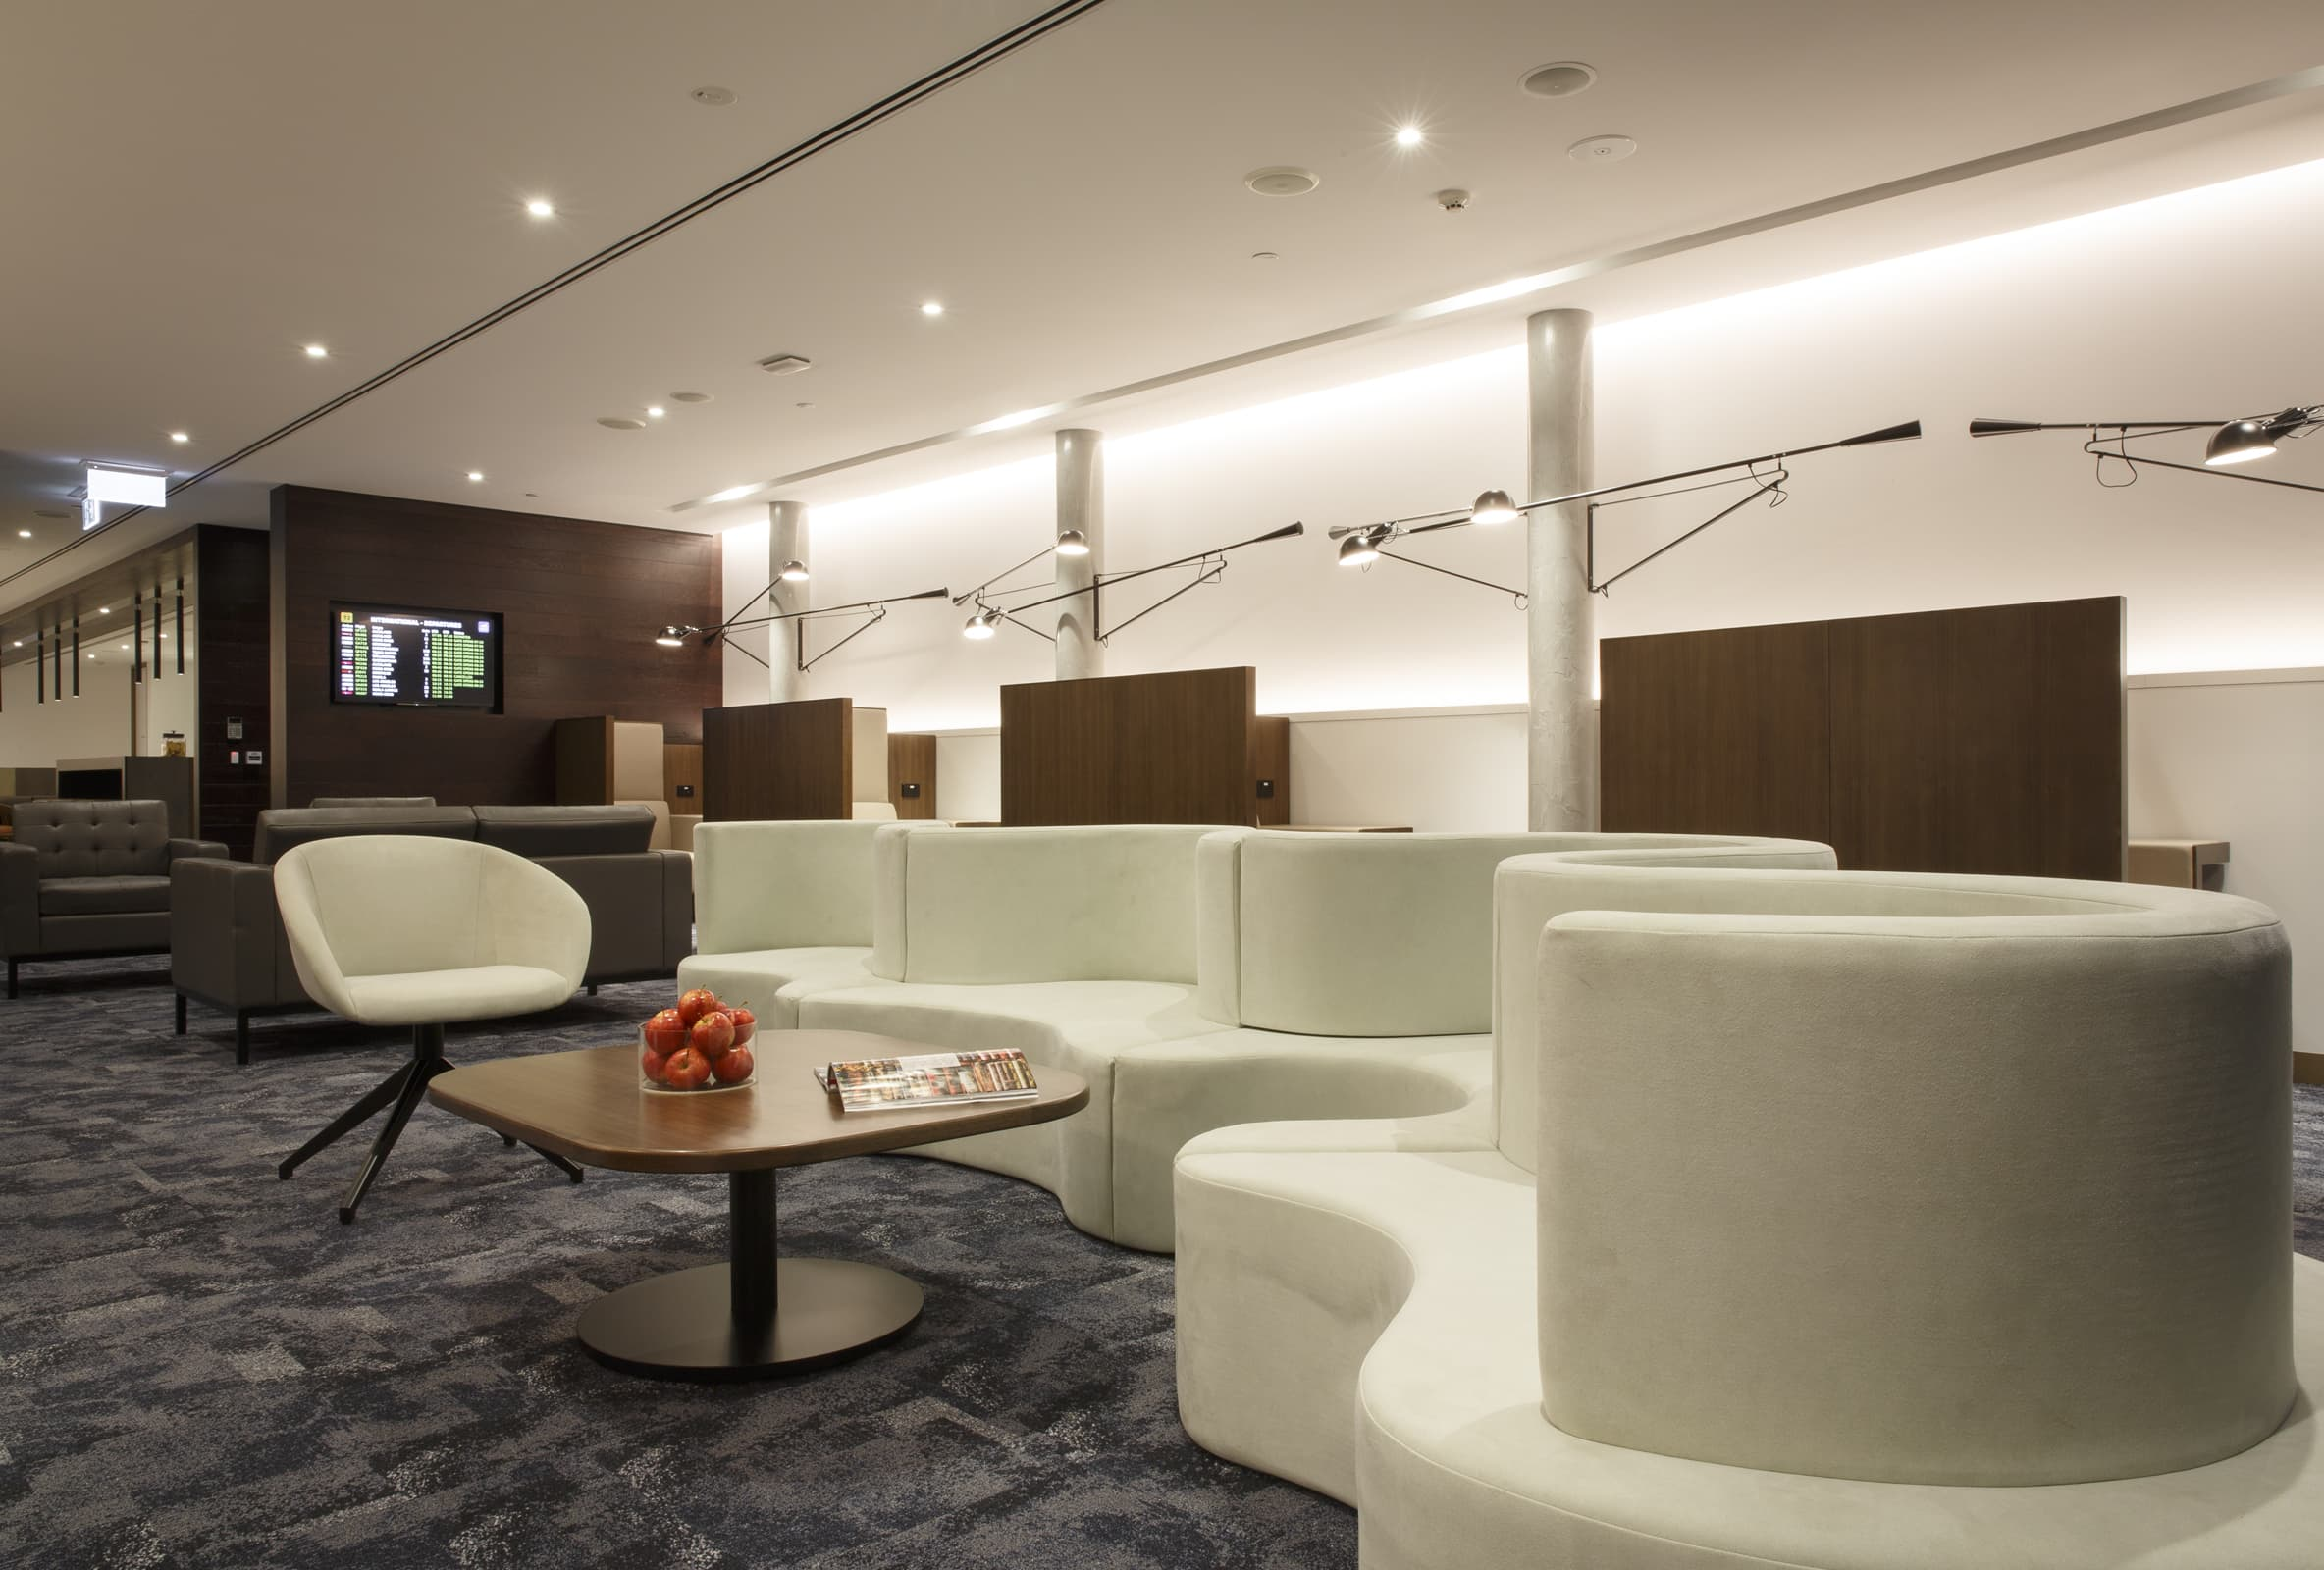 American Express Lounge Melbourne Airport seating